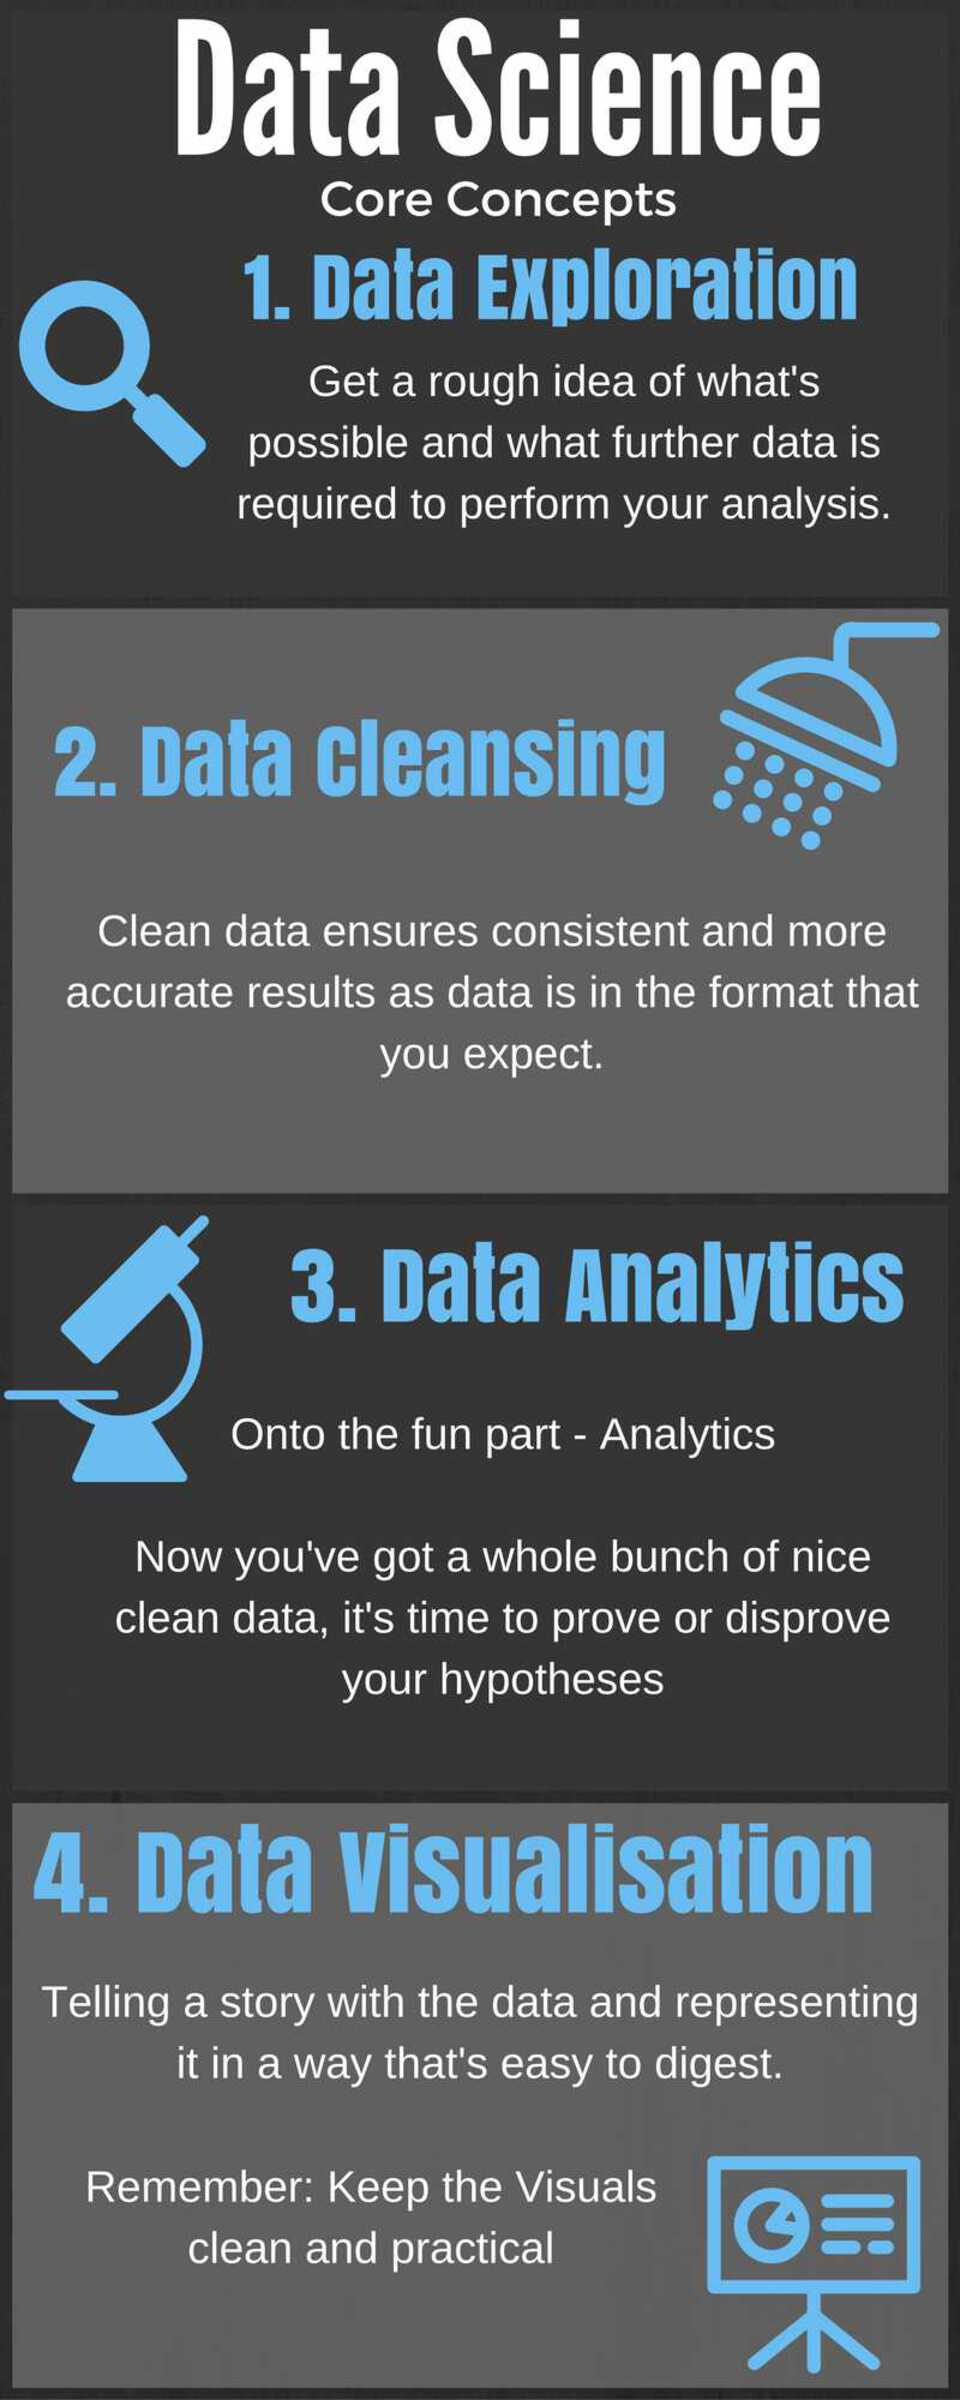 Data science core concepts infographic